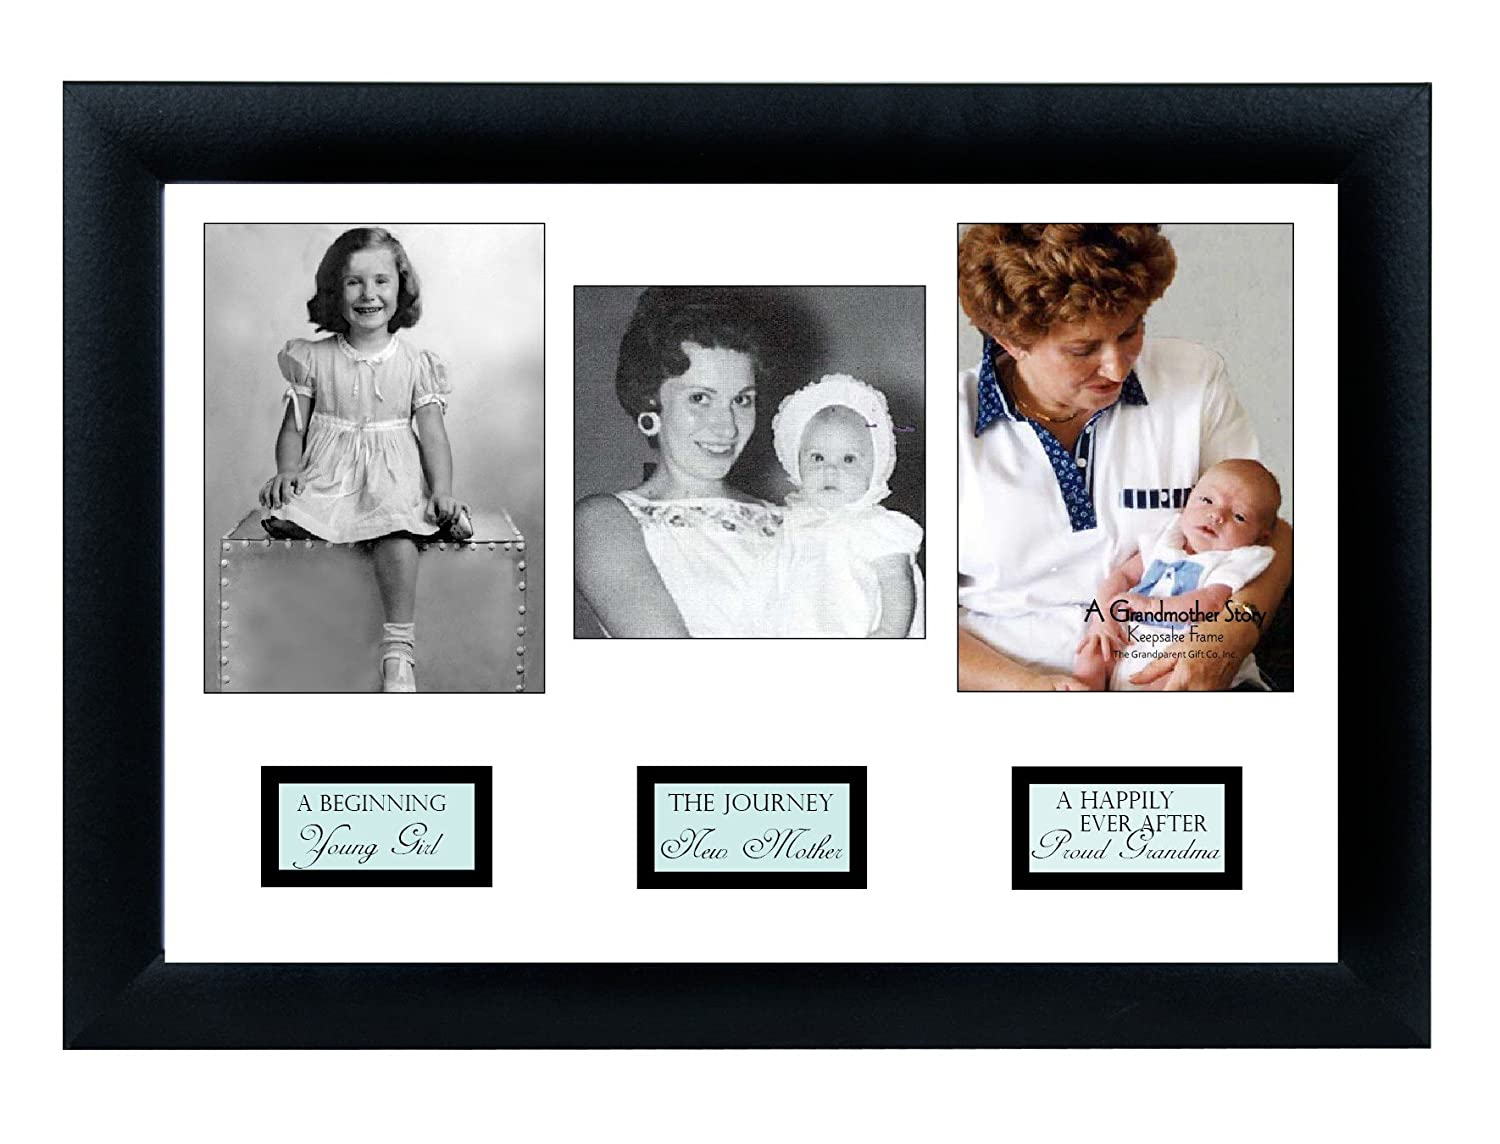 25-gifts-for-new-grandparents-life-story-picture-frame